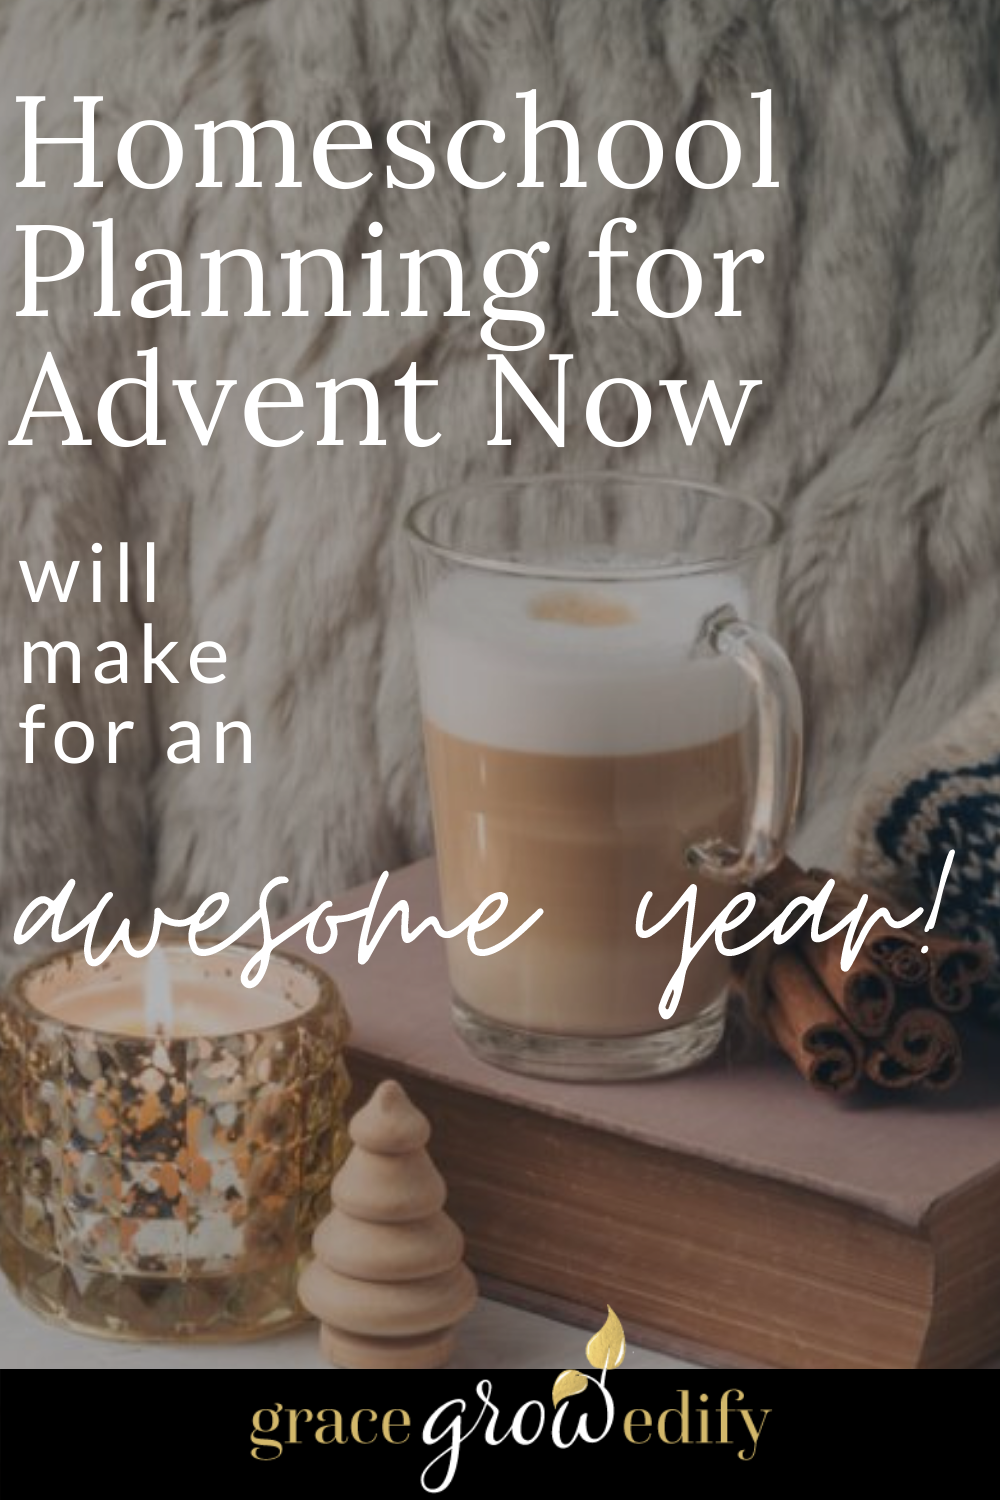 Don't wait until November and then have to scramble for Advent plans! Plan now, along with your other curriculum and be ready for Advent this year! #advent #christmasinjuly #homeschoolplanning #homeschooladvent